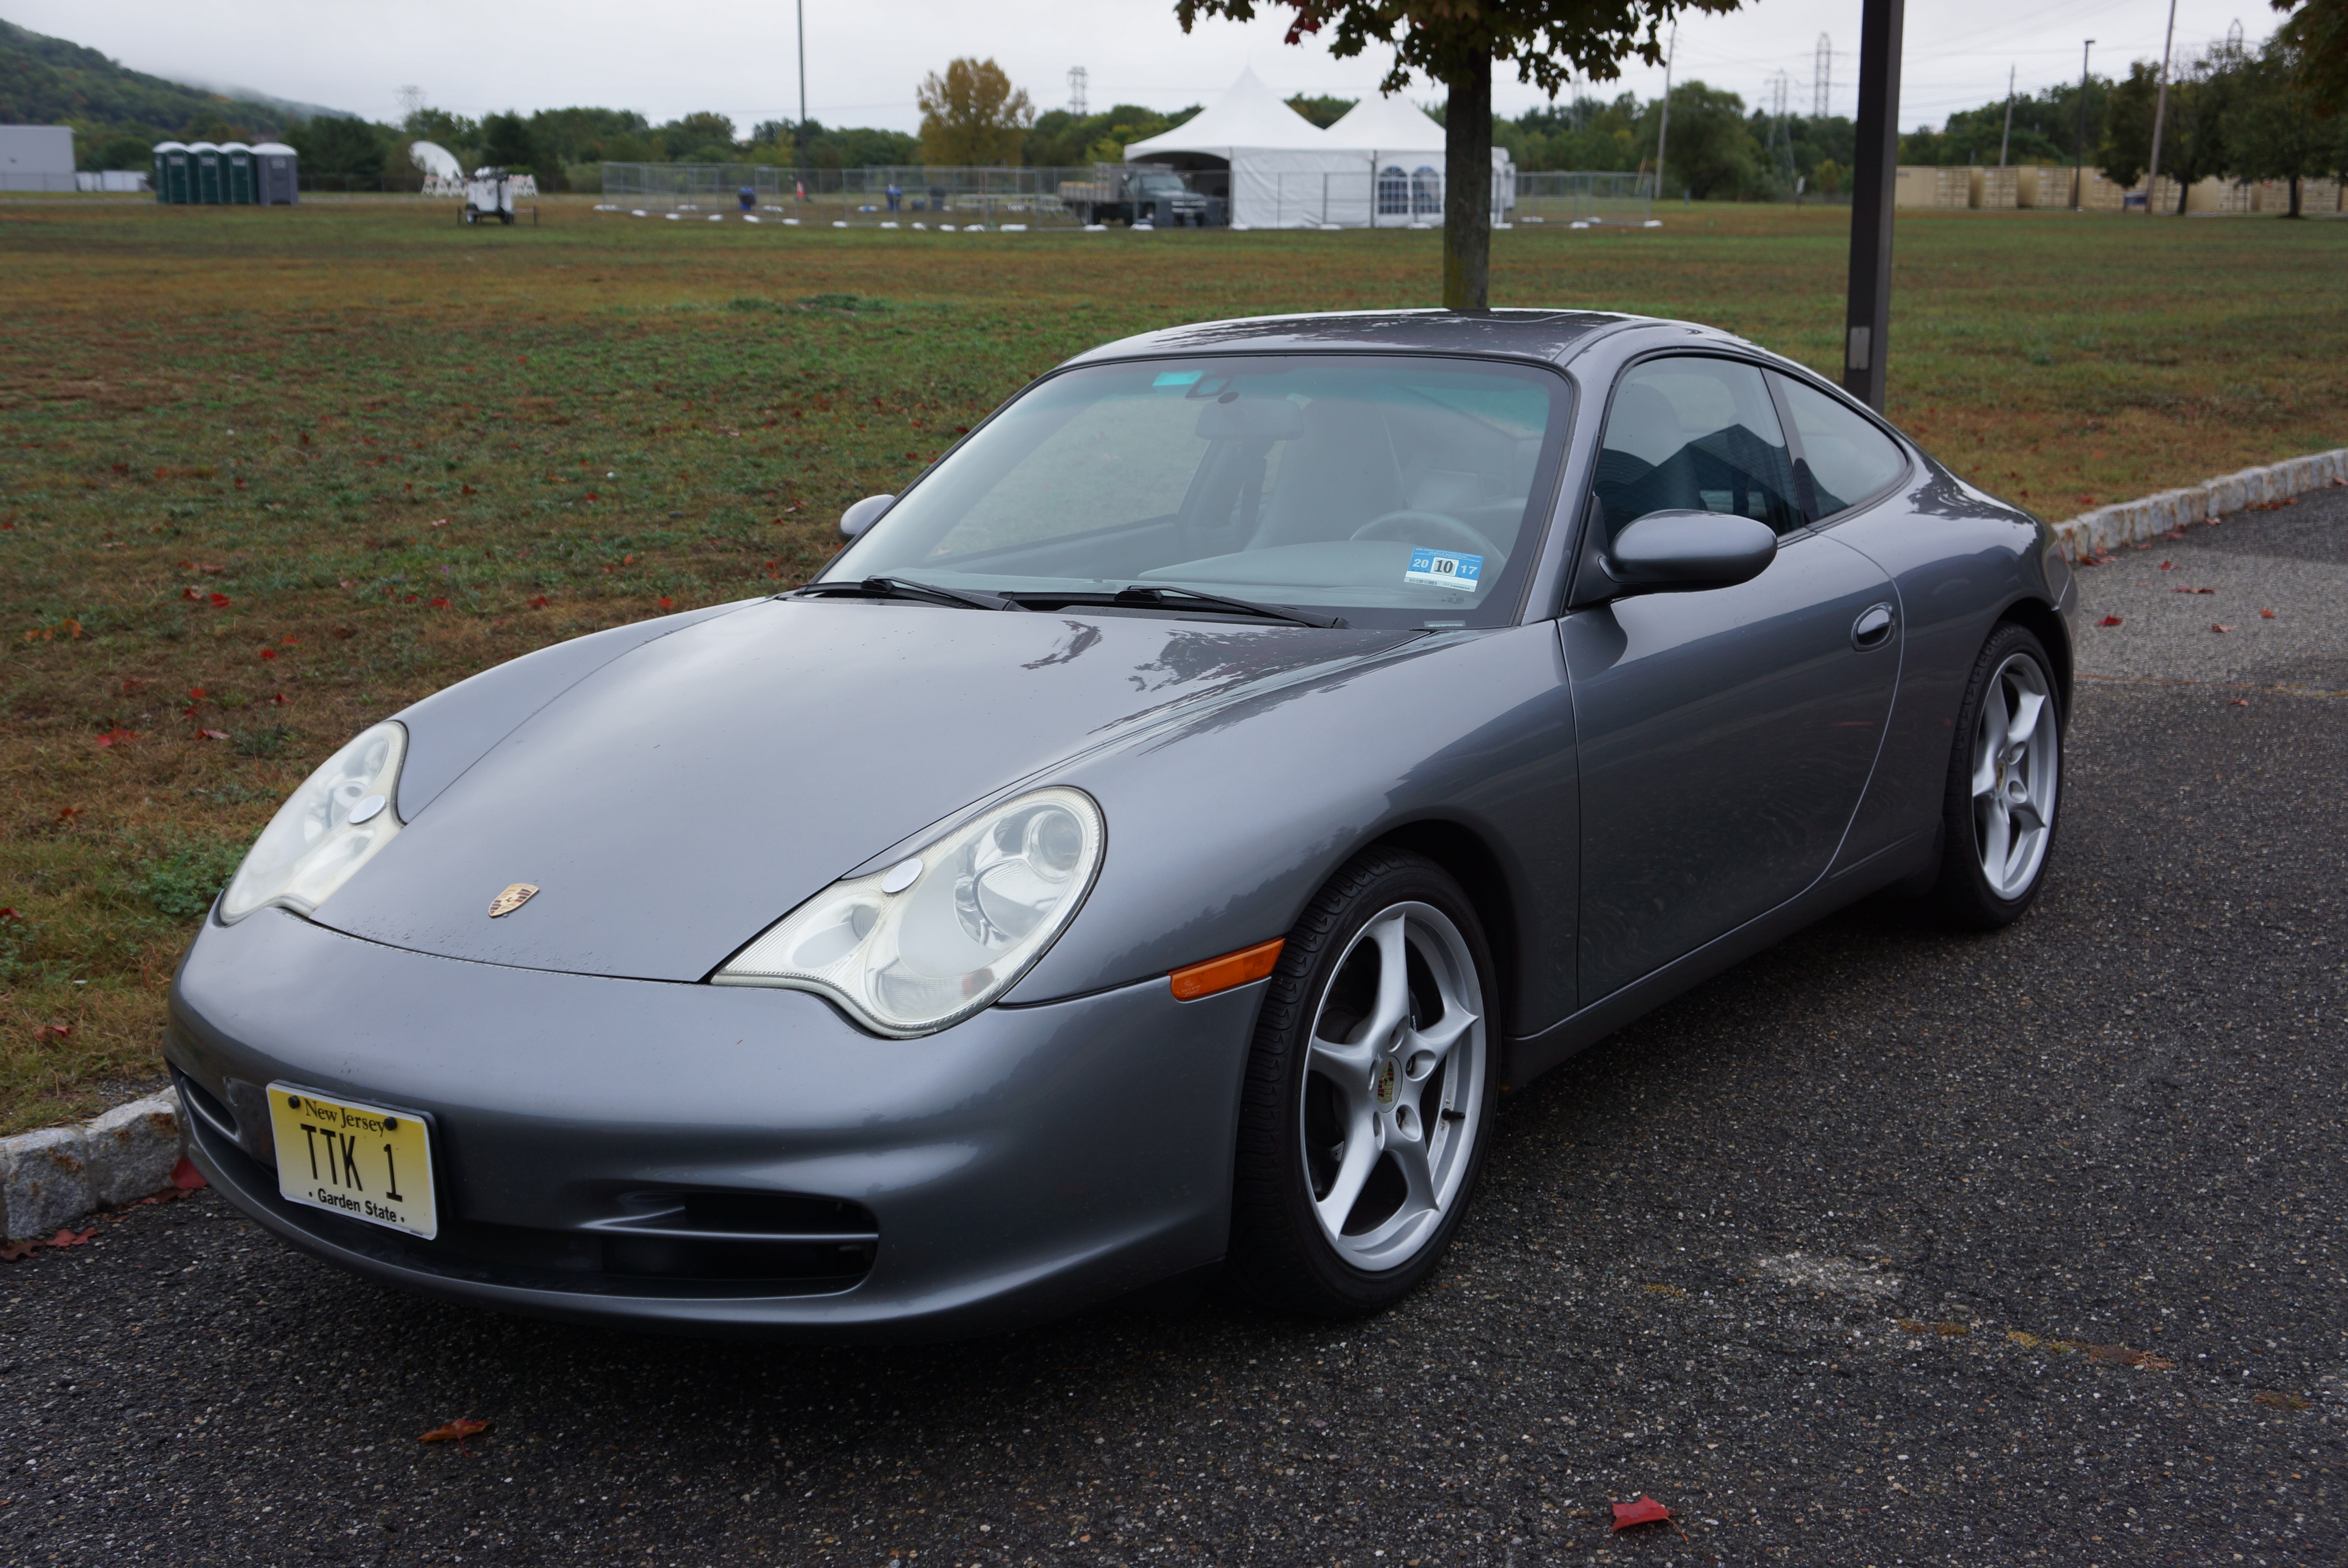 Ted's NON RED 911